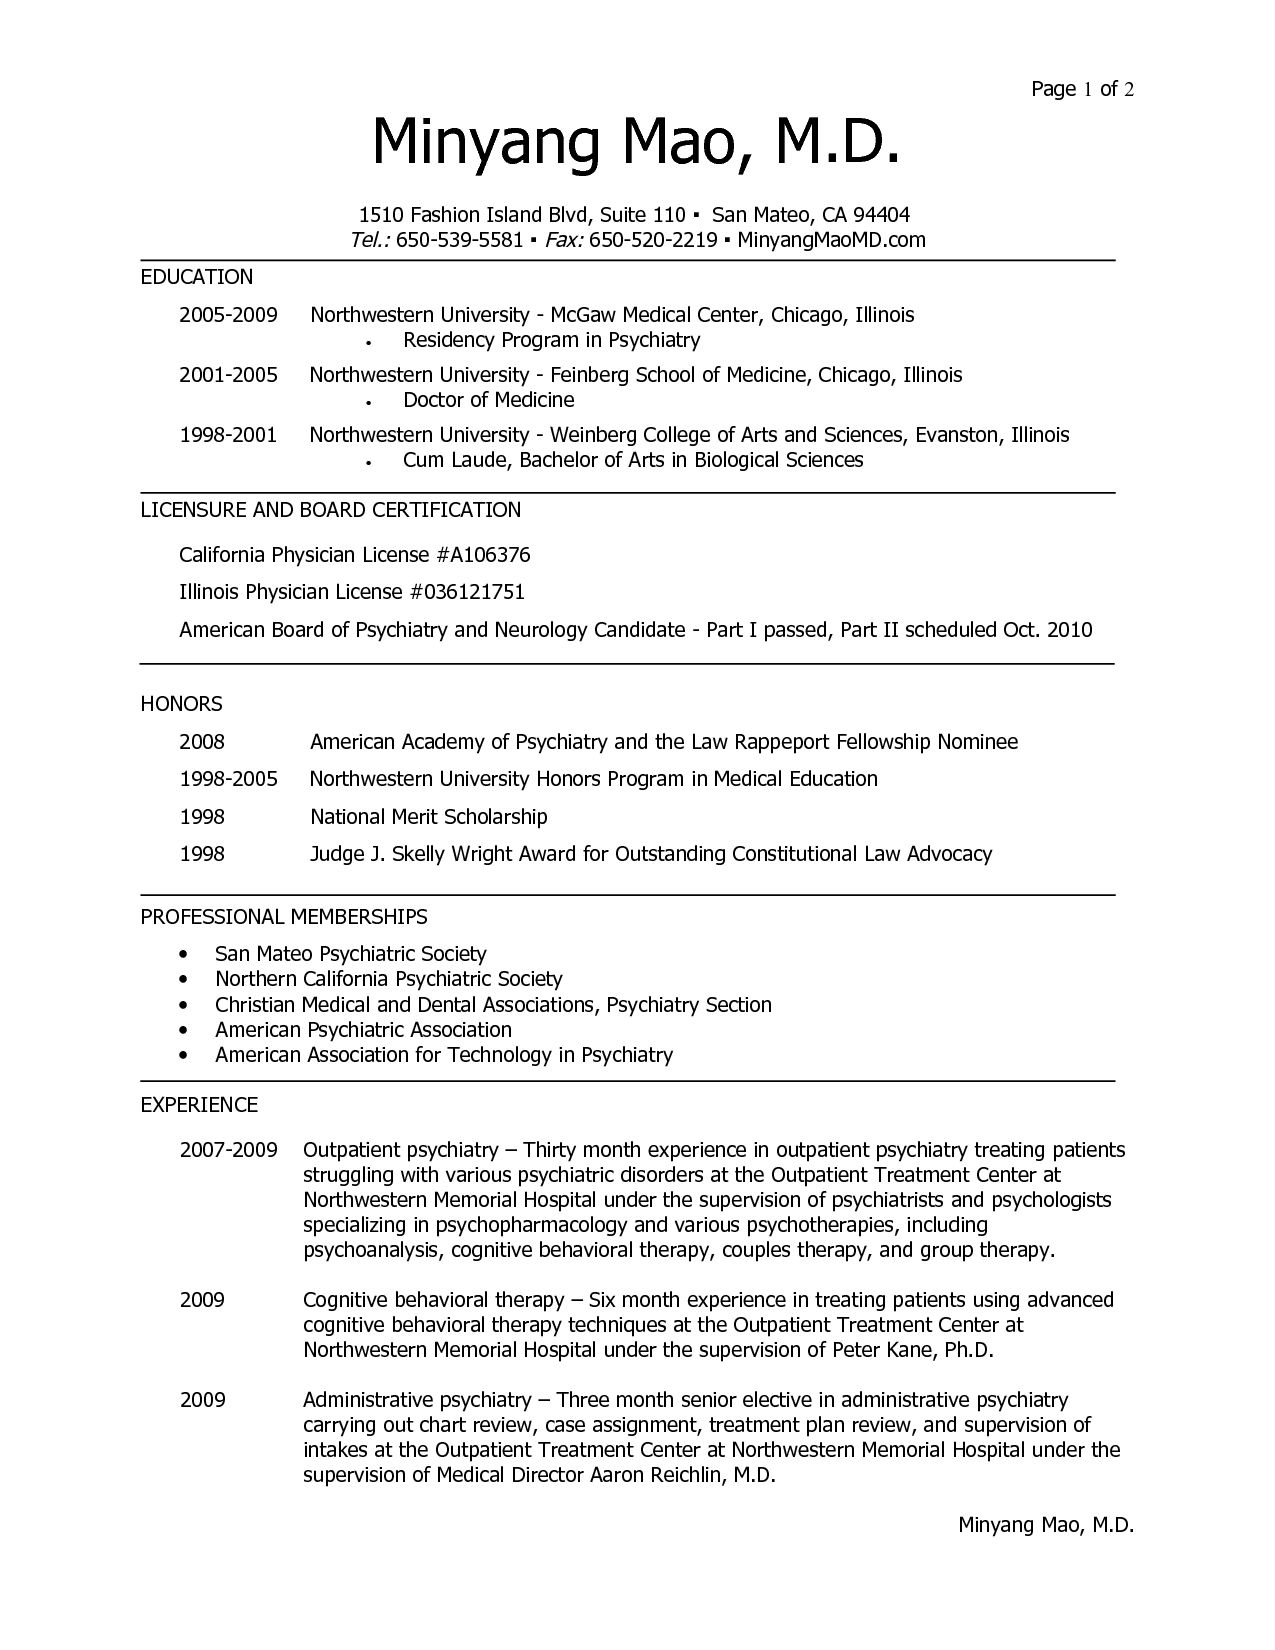 Medical School Resume Template Medical School Resume Example ...